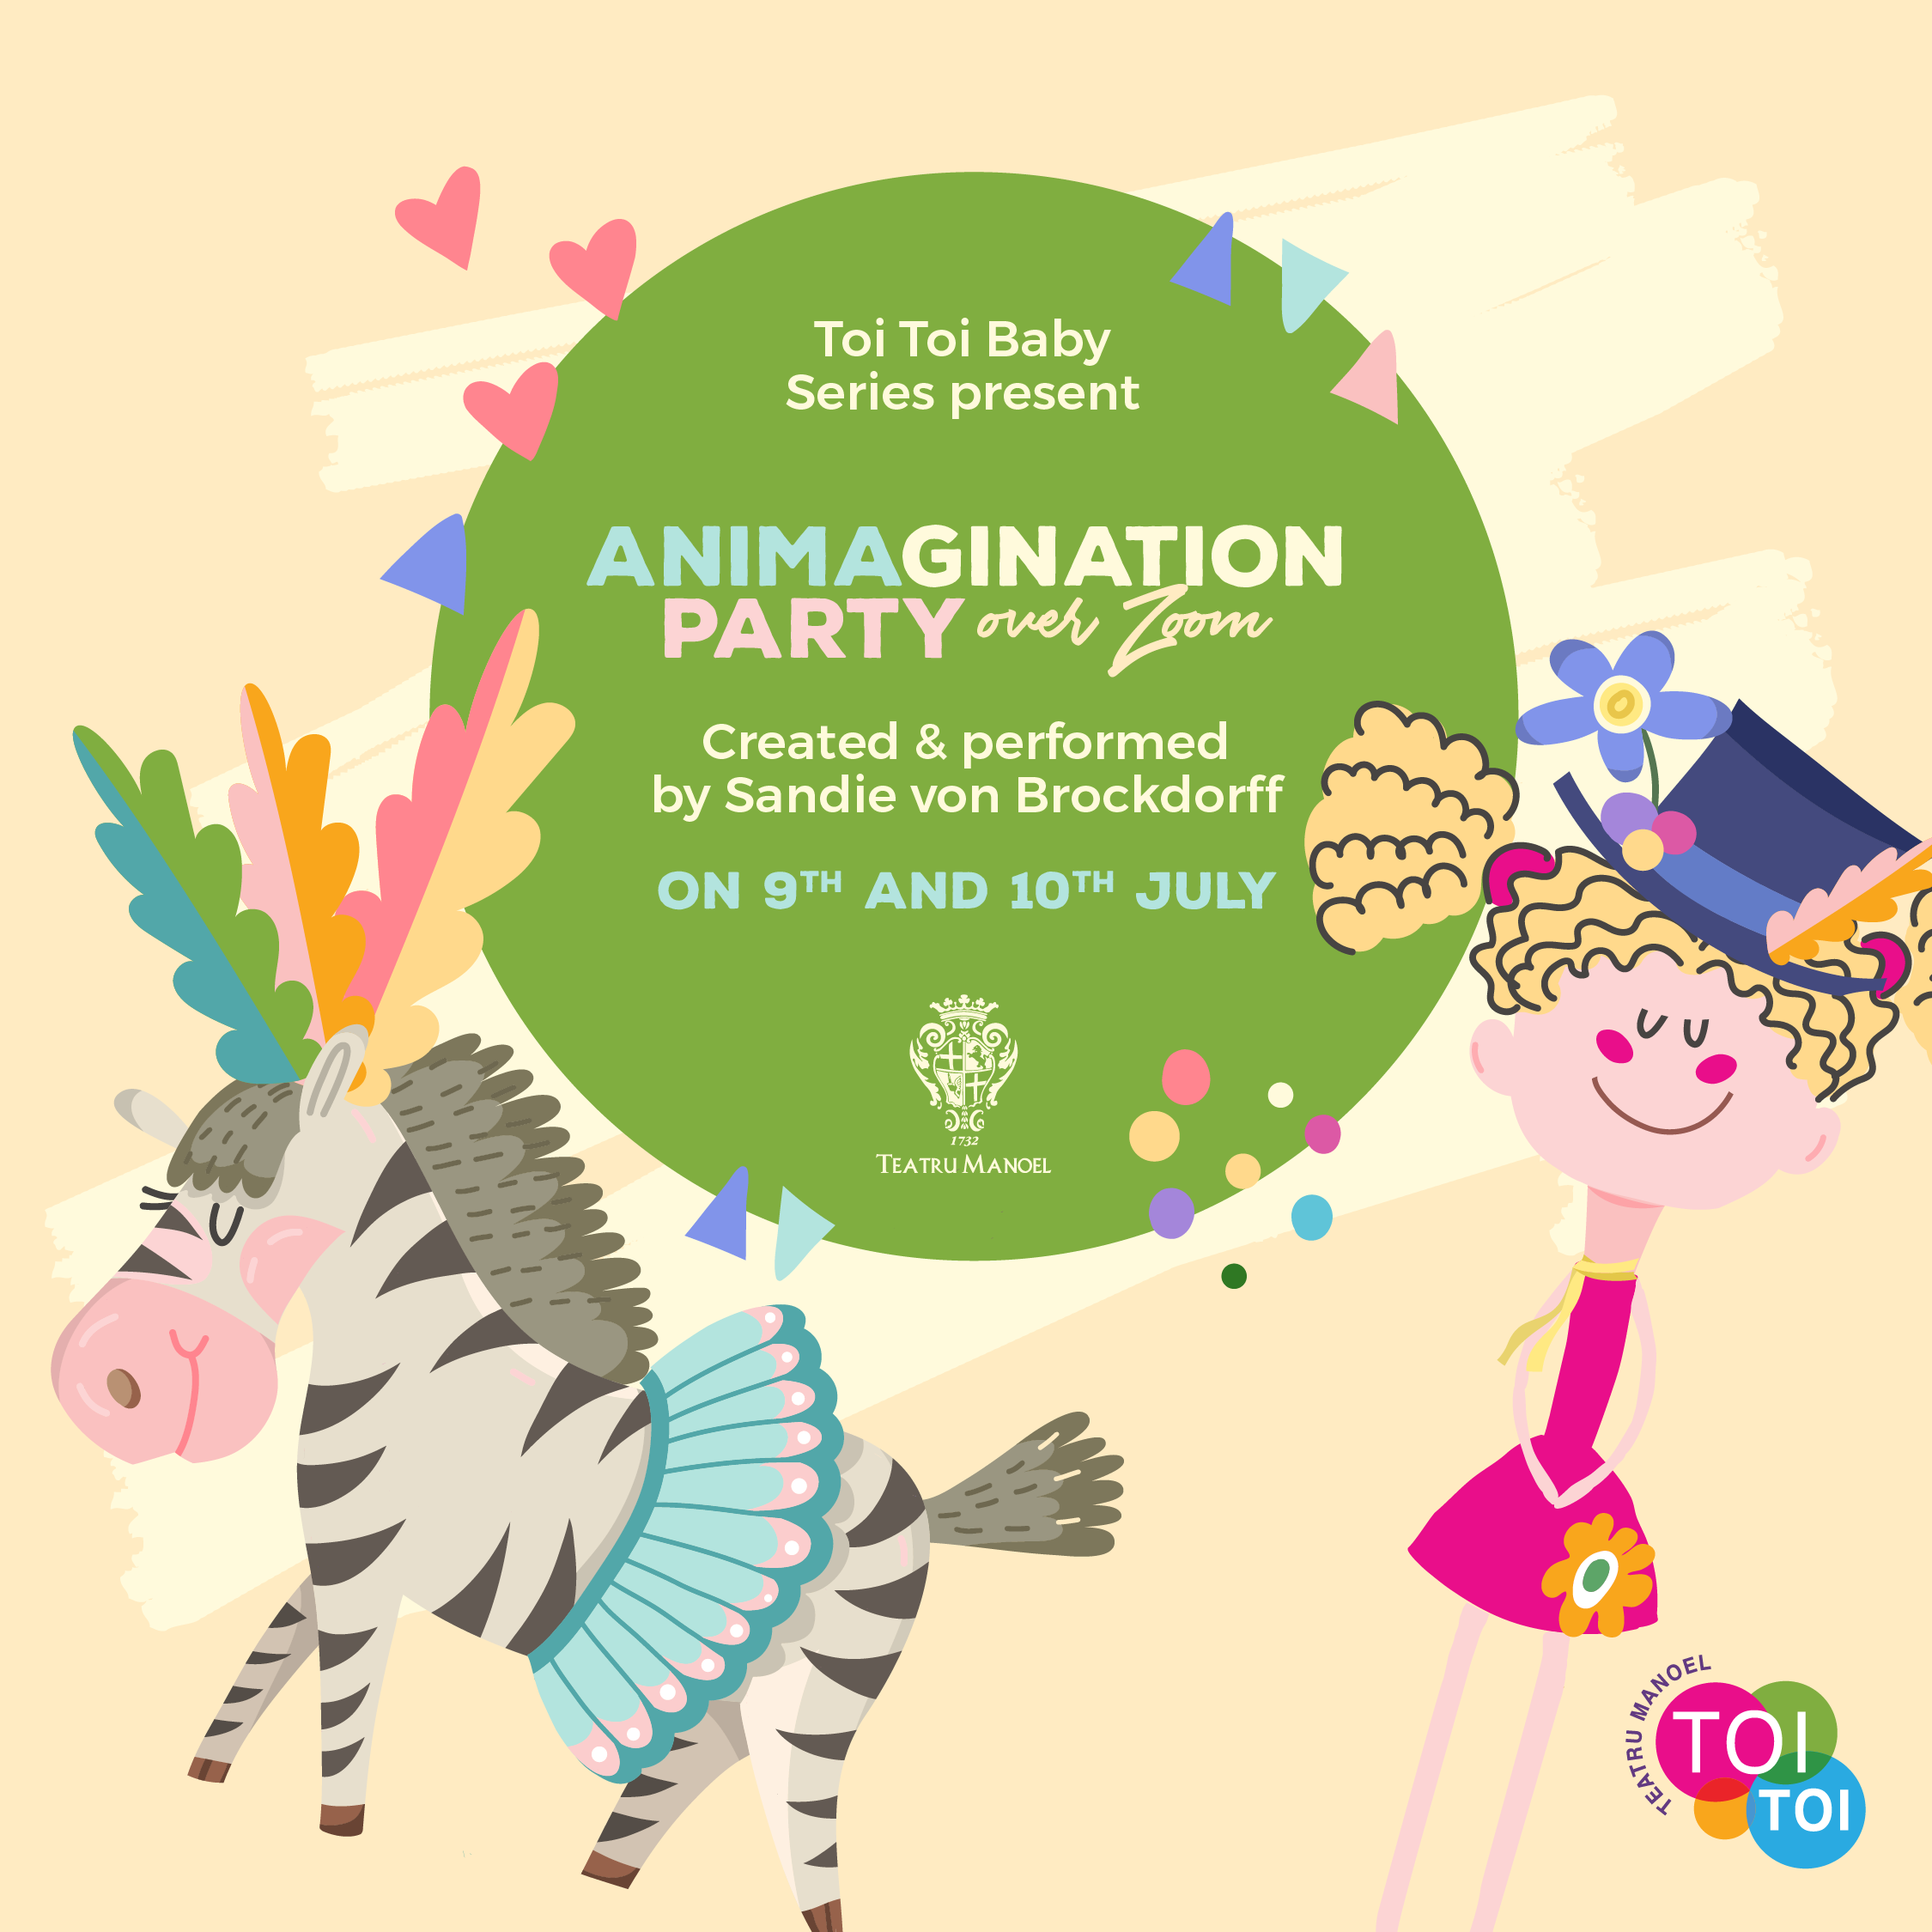 Toi Toi Baby Show: Animagination Party